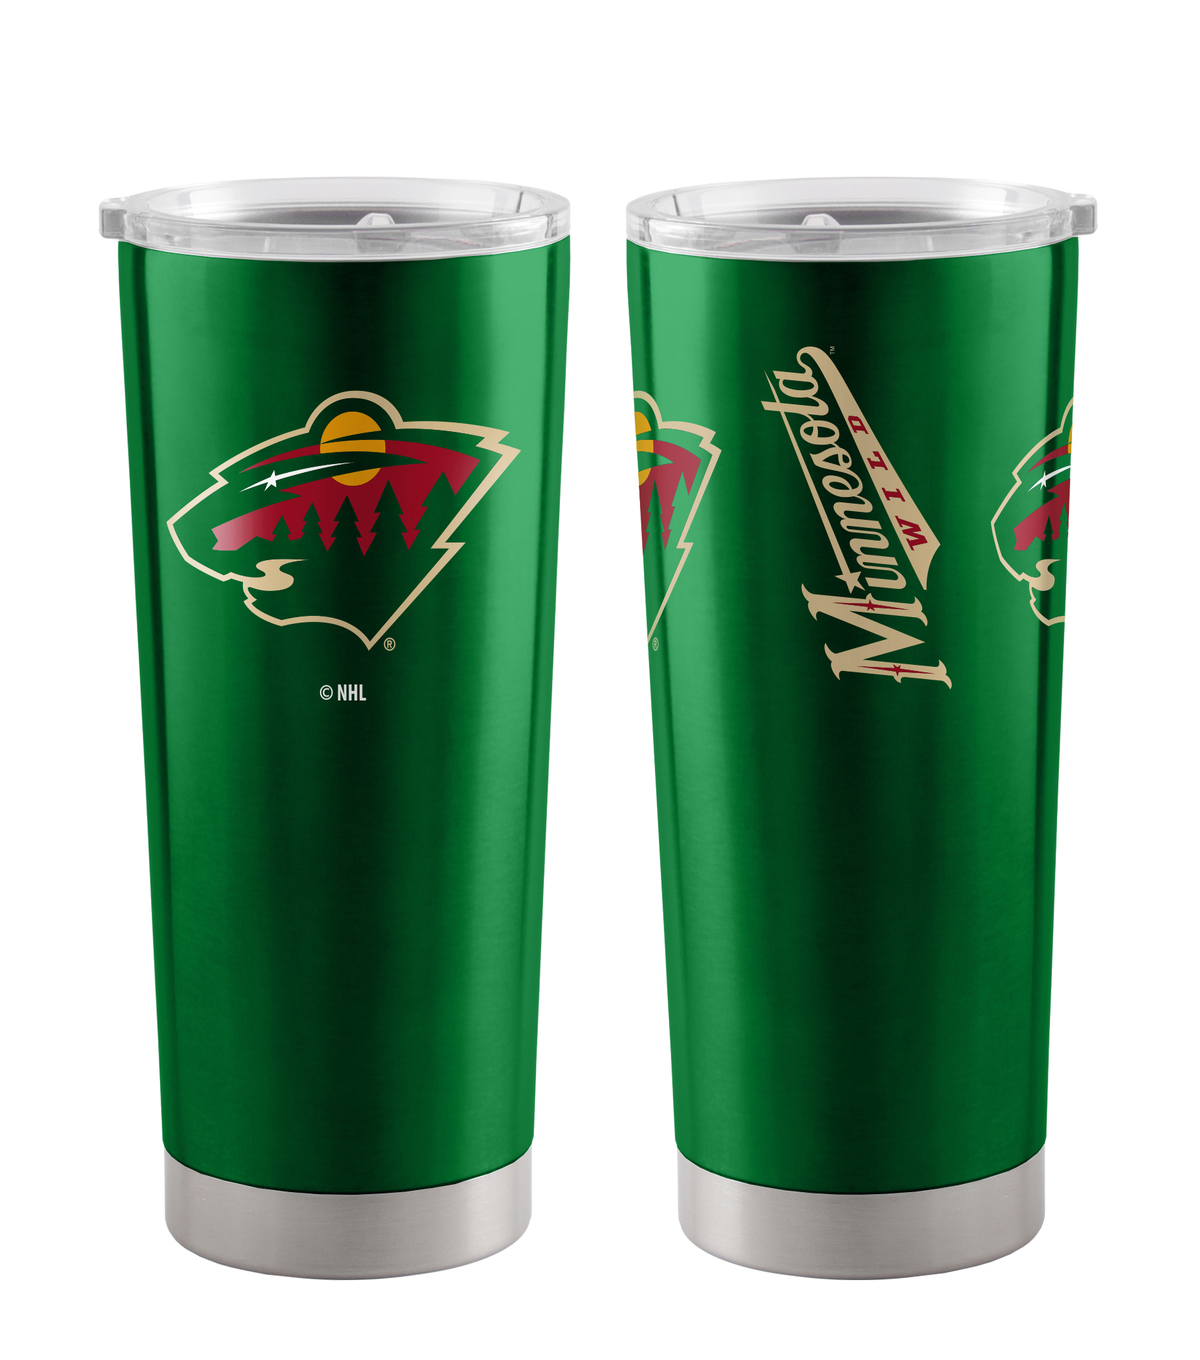 Minnesota Wild 20 oz Insulated Stainless Steel Tumbler